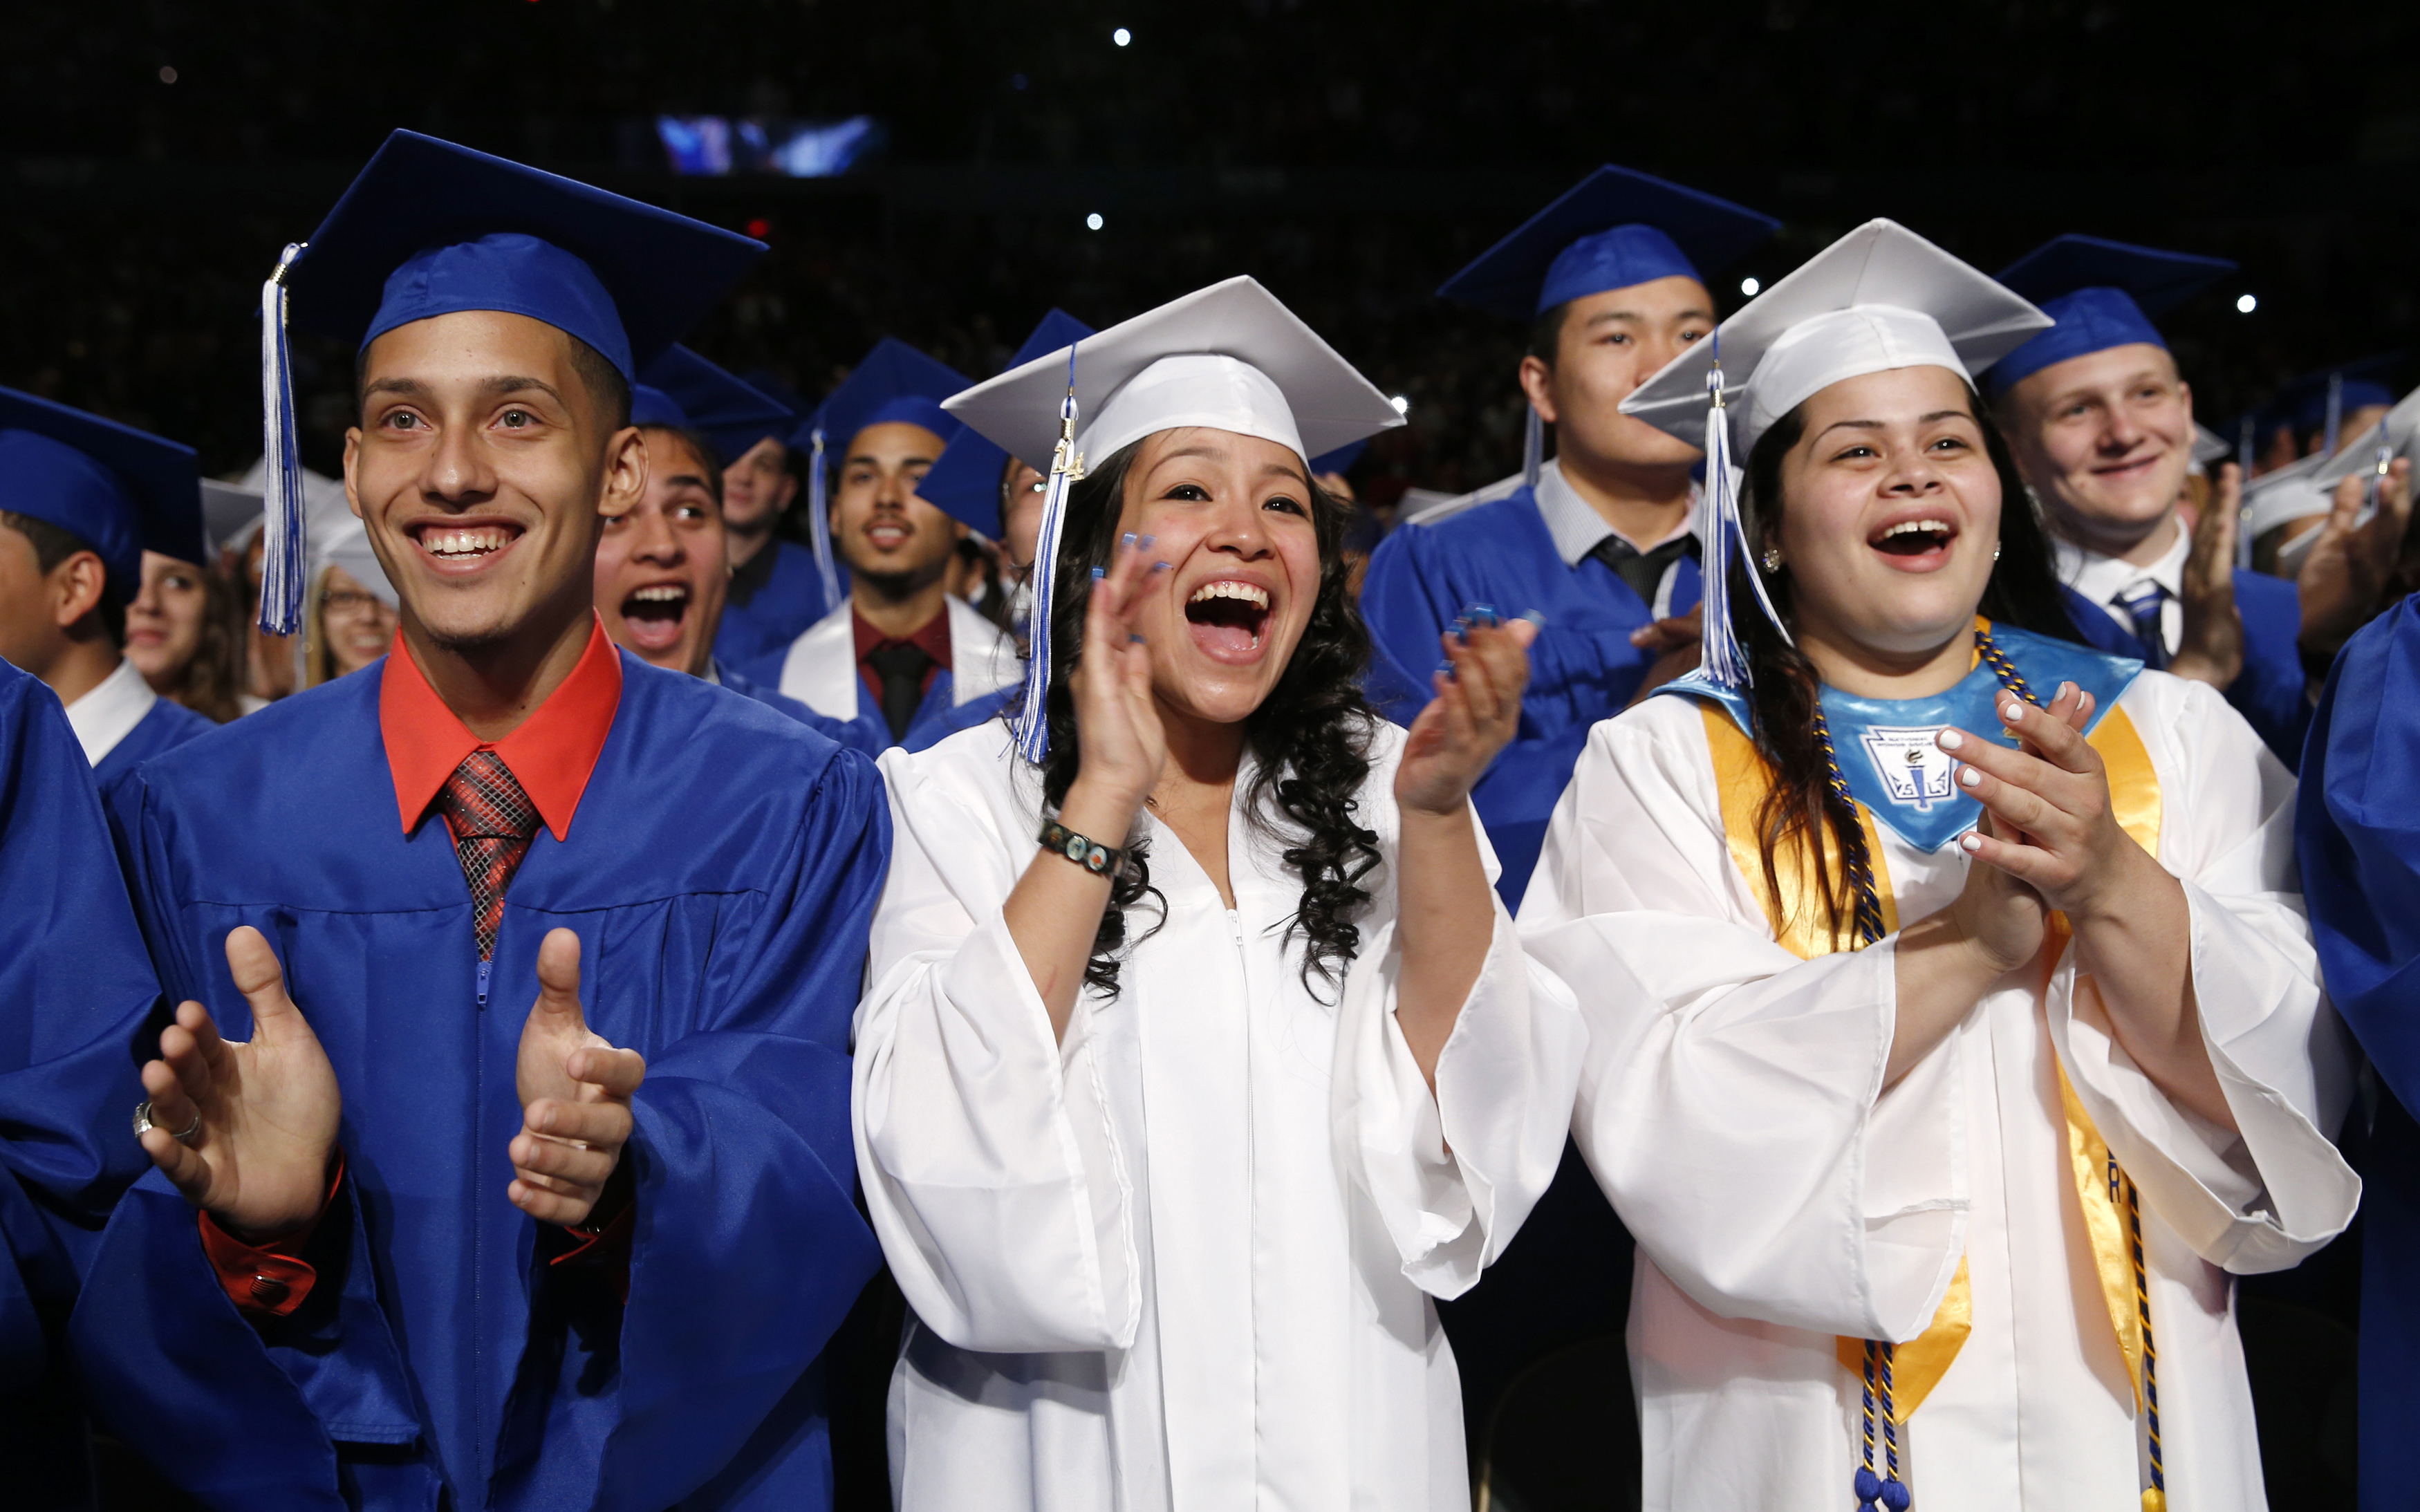 Students applaud as U.S. President Barack Obama arrives to deliver the commencement address at the Worcester Technical High School graduation ceremony in Worcester, Massachusetts June 11, 2014